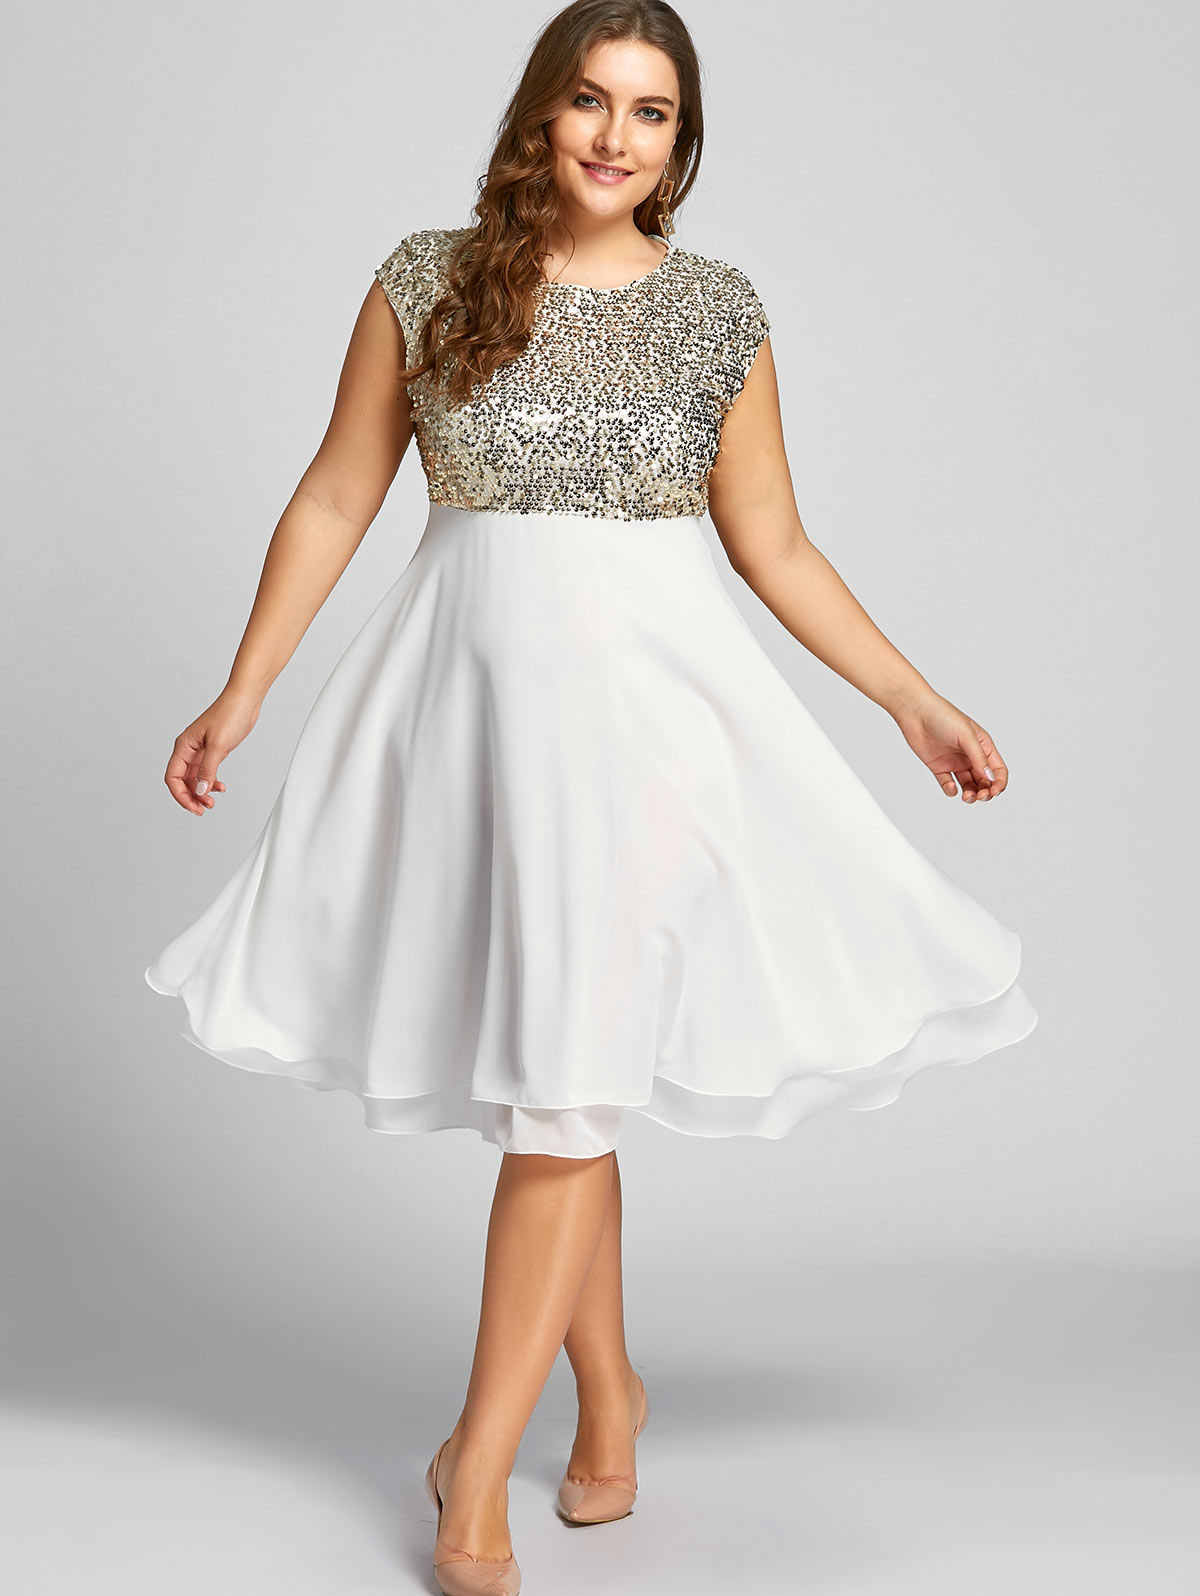 538f67594893a Detail Feedback Questions about Kenancy Plus Size Flounce Sequin ...